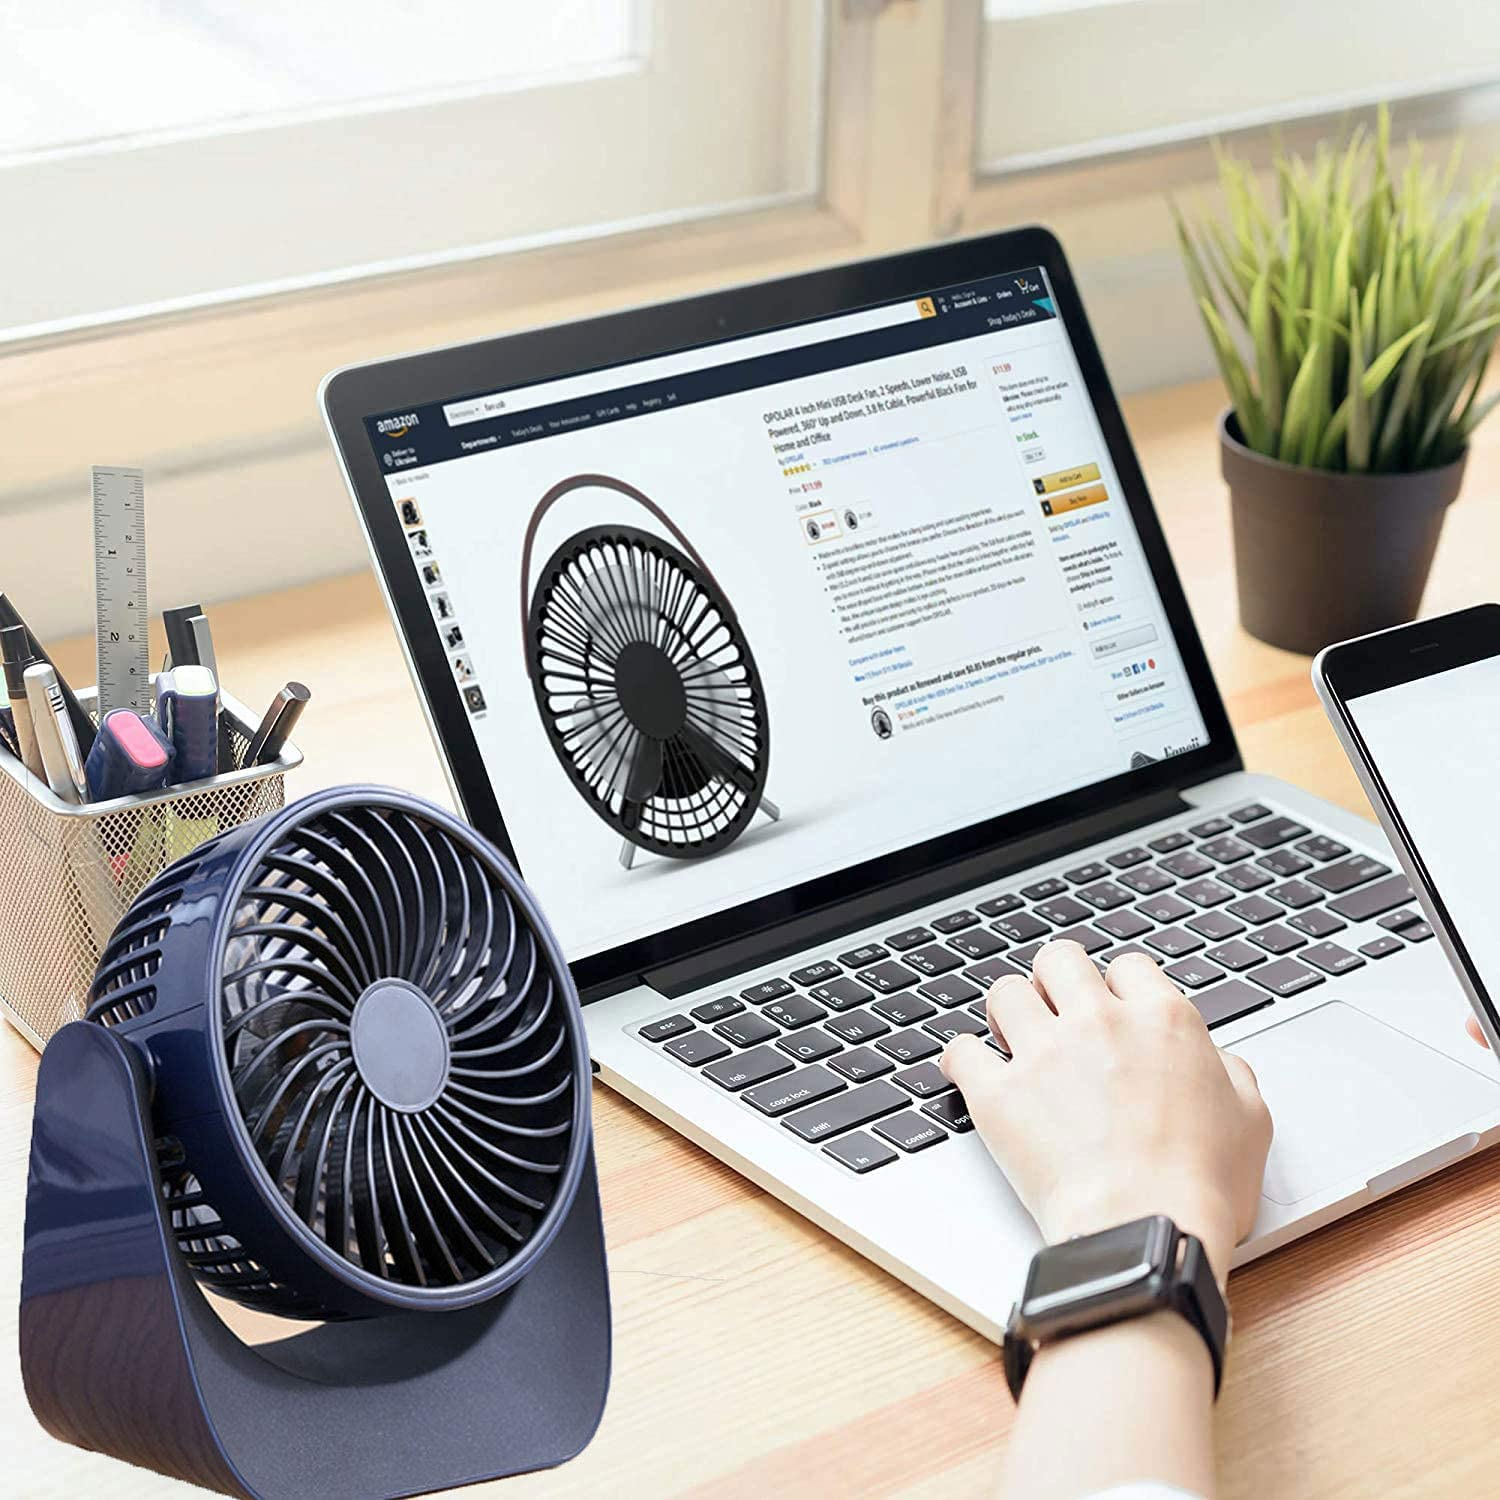 Jaxbo USB fan desk fan Small Portable Fan, Mini USB Fan, USB Portable Desk Fan with 360 Rotation, USB or Battery Operated Rechargeable for Outdoor, Room, Camping, Office, Travel, 7 inch(Navy Blue)…